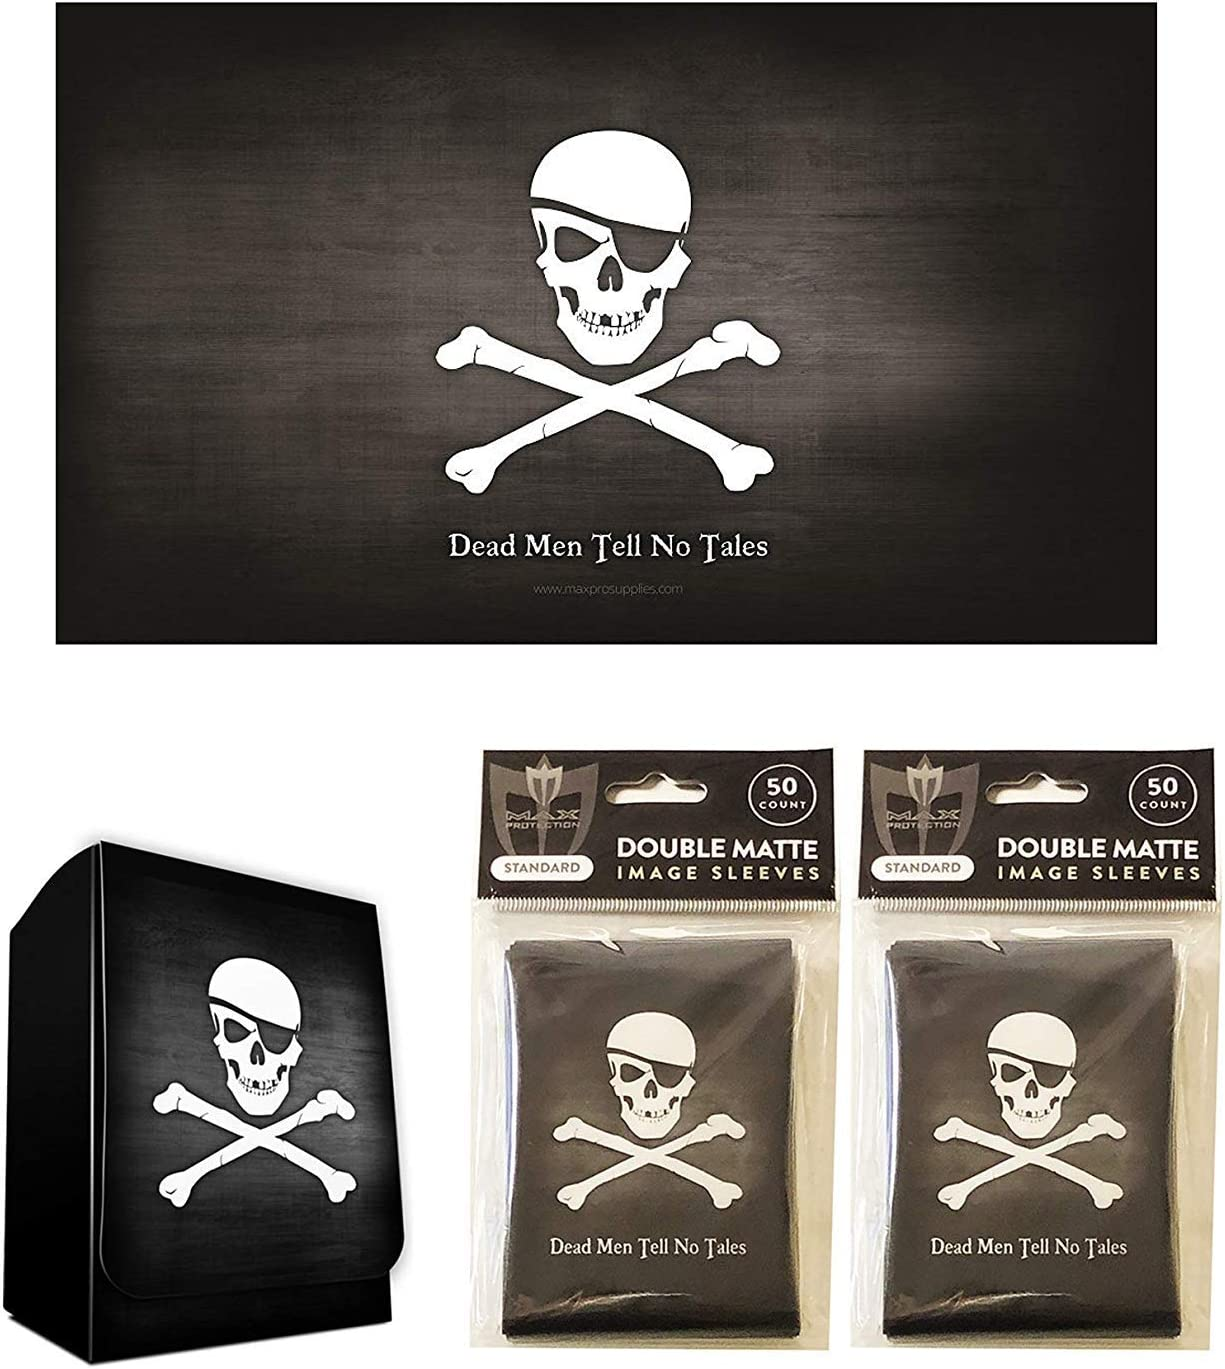 Pirate Jolly Roger Design Playmat + Deck Box + 100 Matching Double Matte Sleeves (fits Magic/MTG Cards) by MAX PRO [並行輸入品]